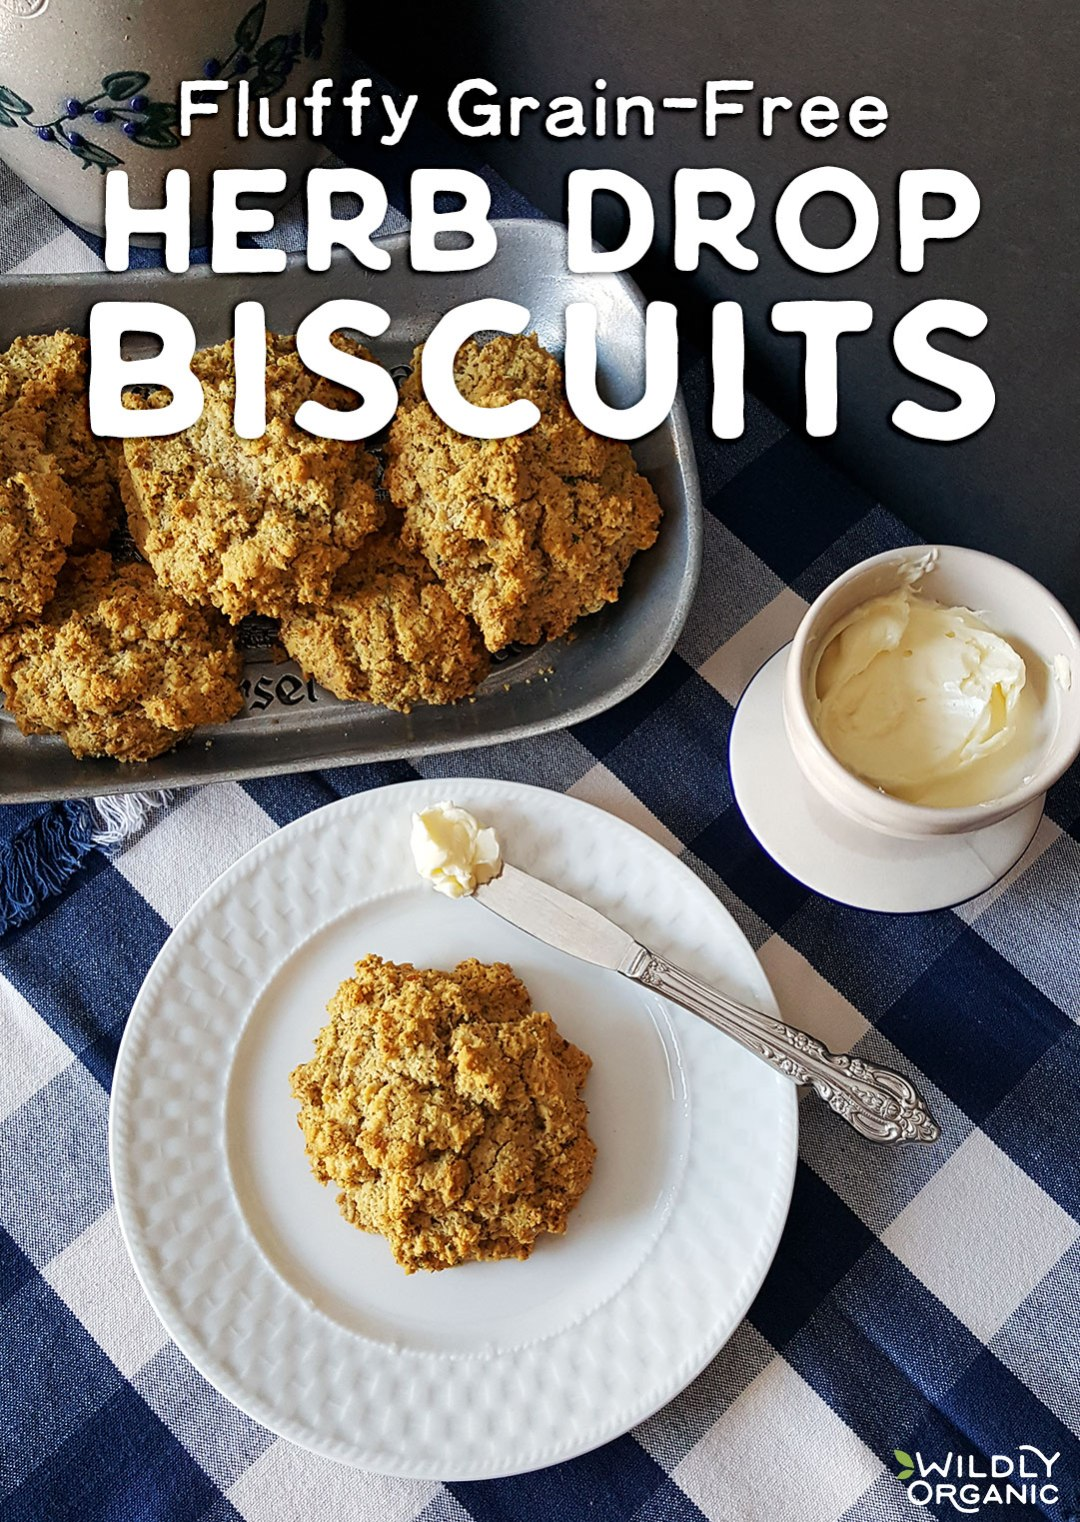 Thanks to this easy recipe -- Grain-Free Herb Drop Biscuits -- you can enjoy soft, fluffy biscuits again! There's one thing these nourishing biscuits have in common with their wheat-filled counterparts: they're the very best hot and fresh out of the oven. Enjoy them with breakfast, soups and stews, salads, or just as a snack!